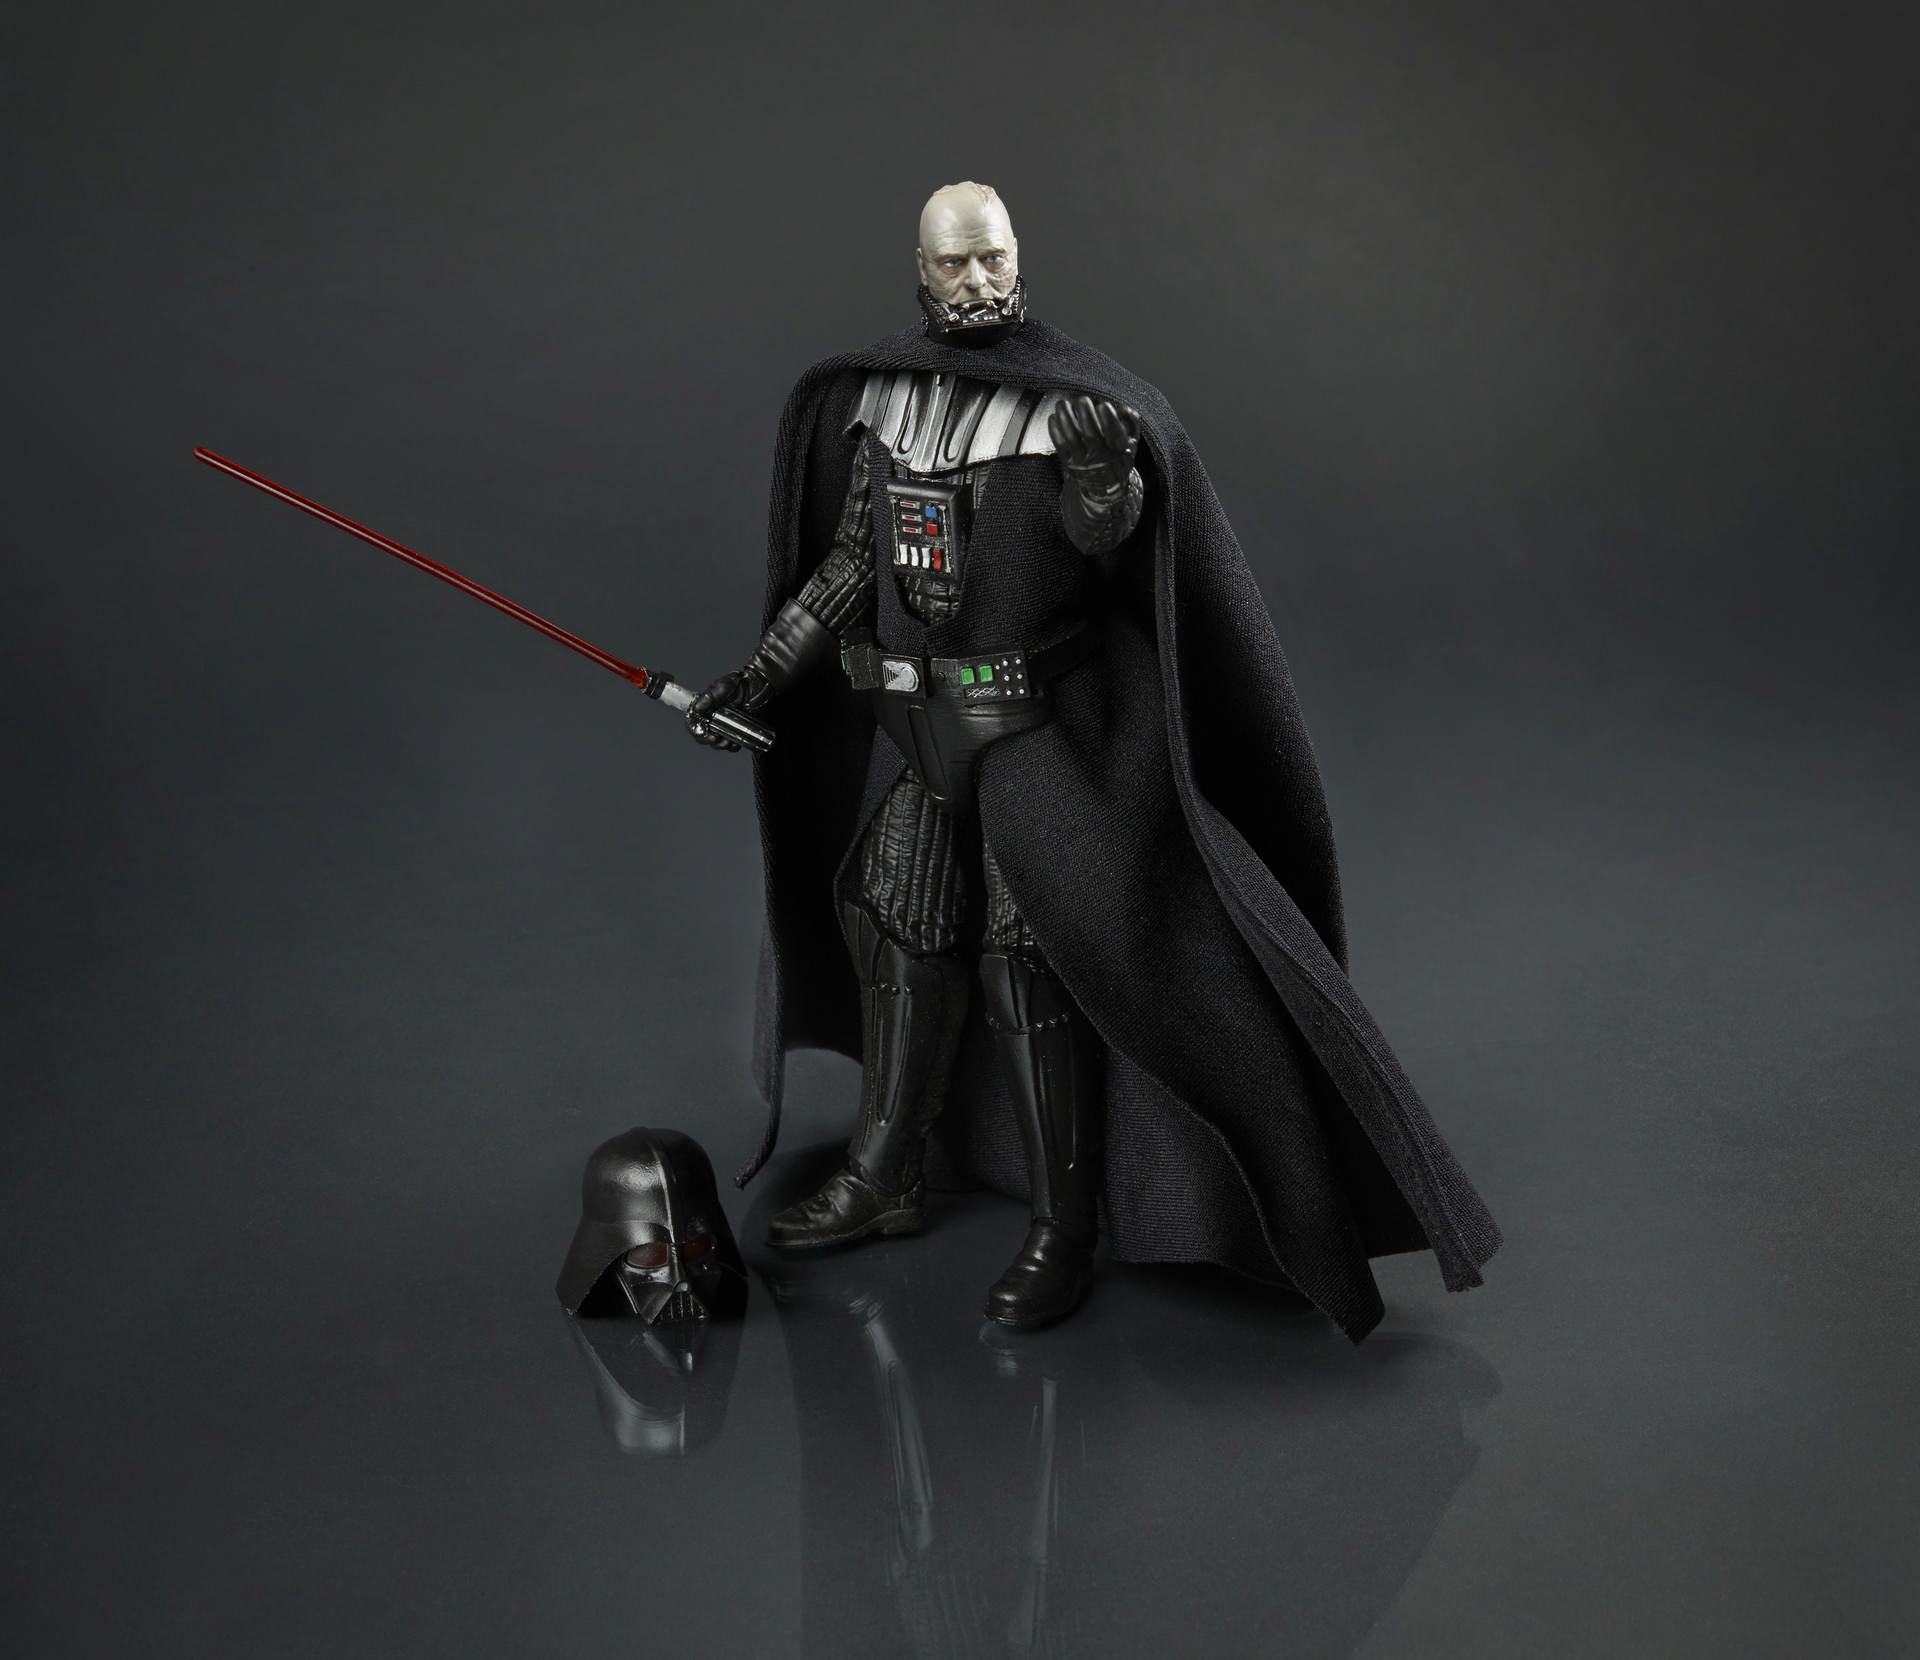 STAR WARS BLACK SERIES 6INCH EPVI DARTH VADER A7268